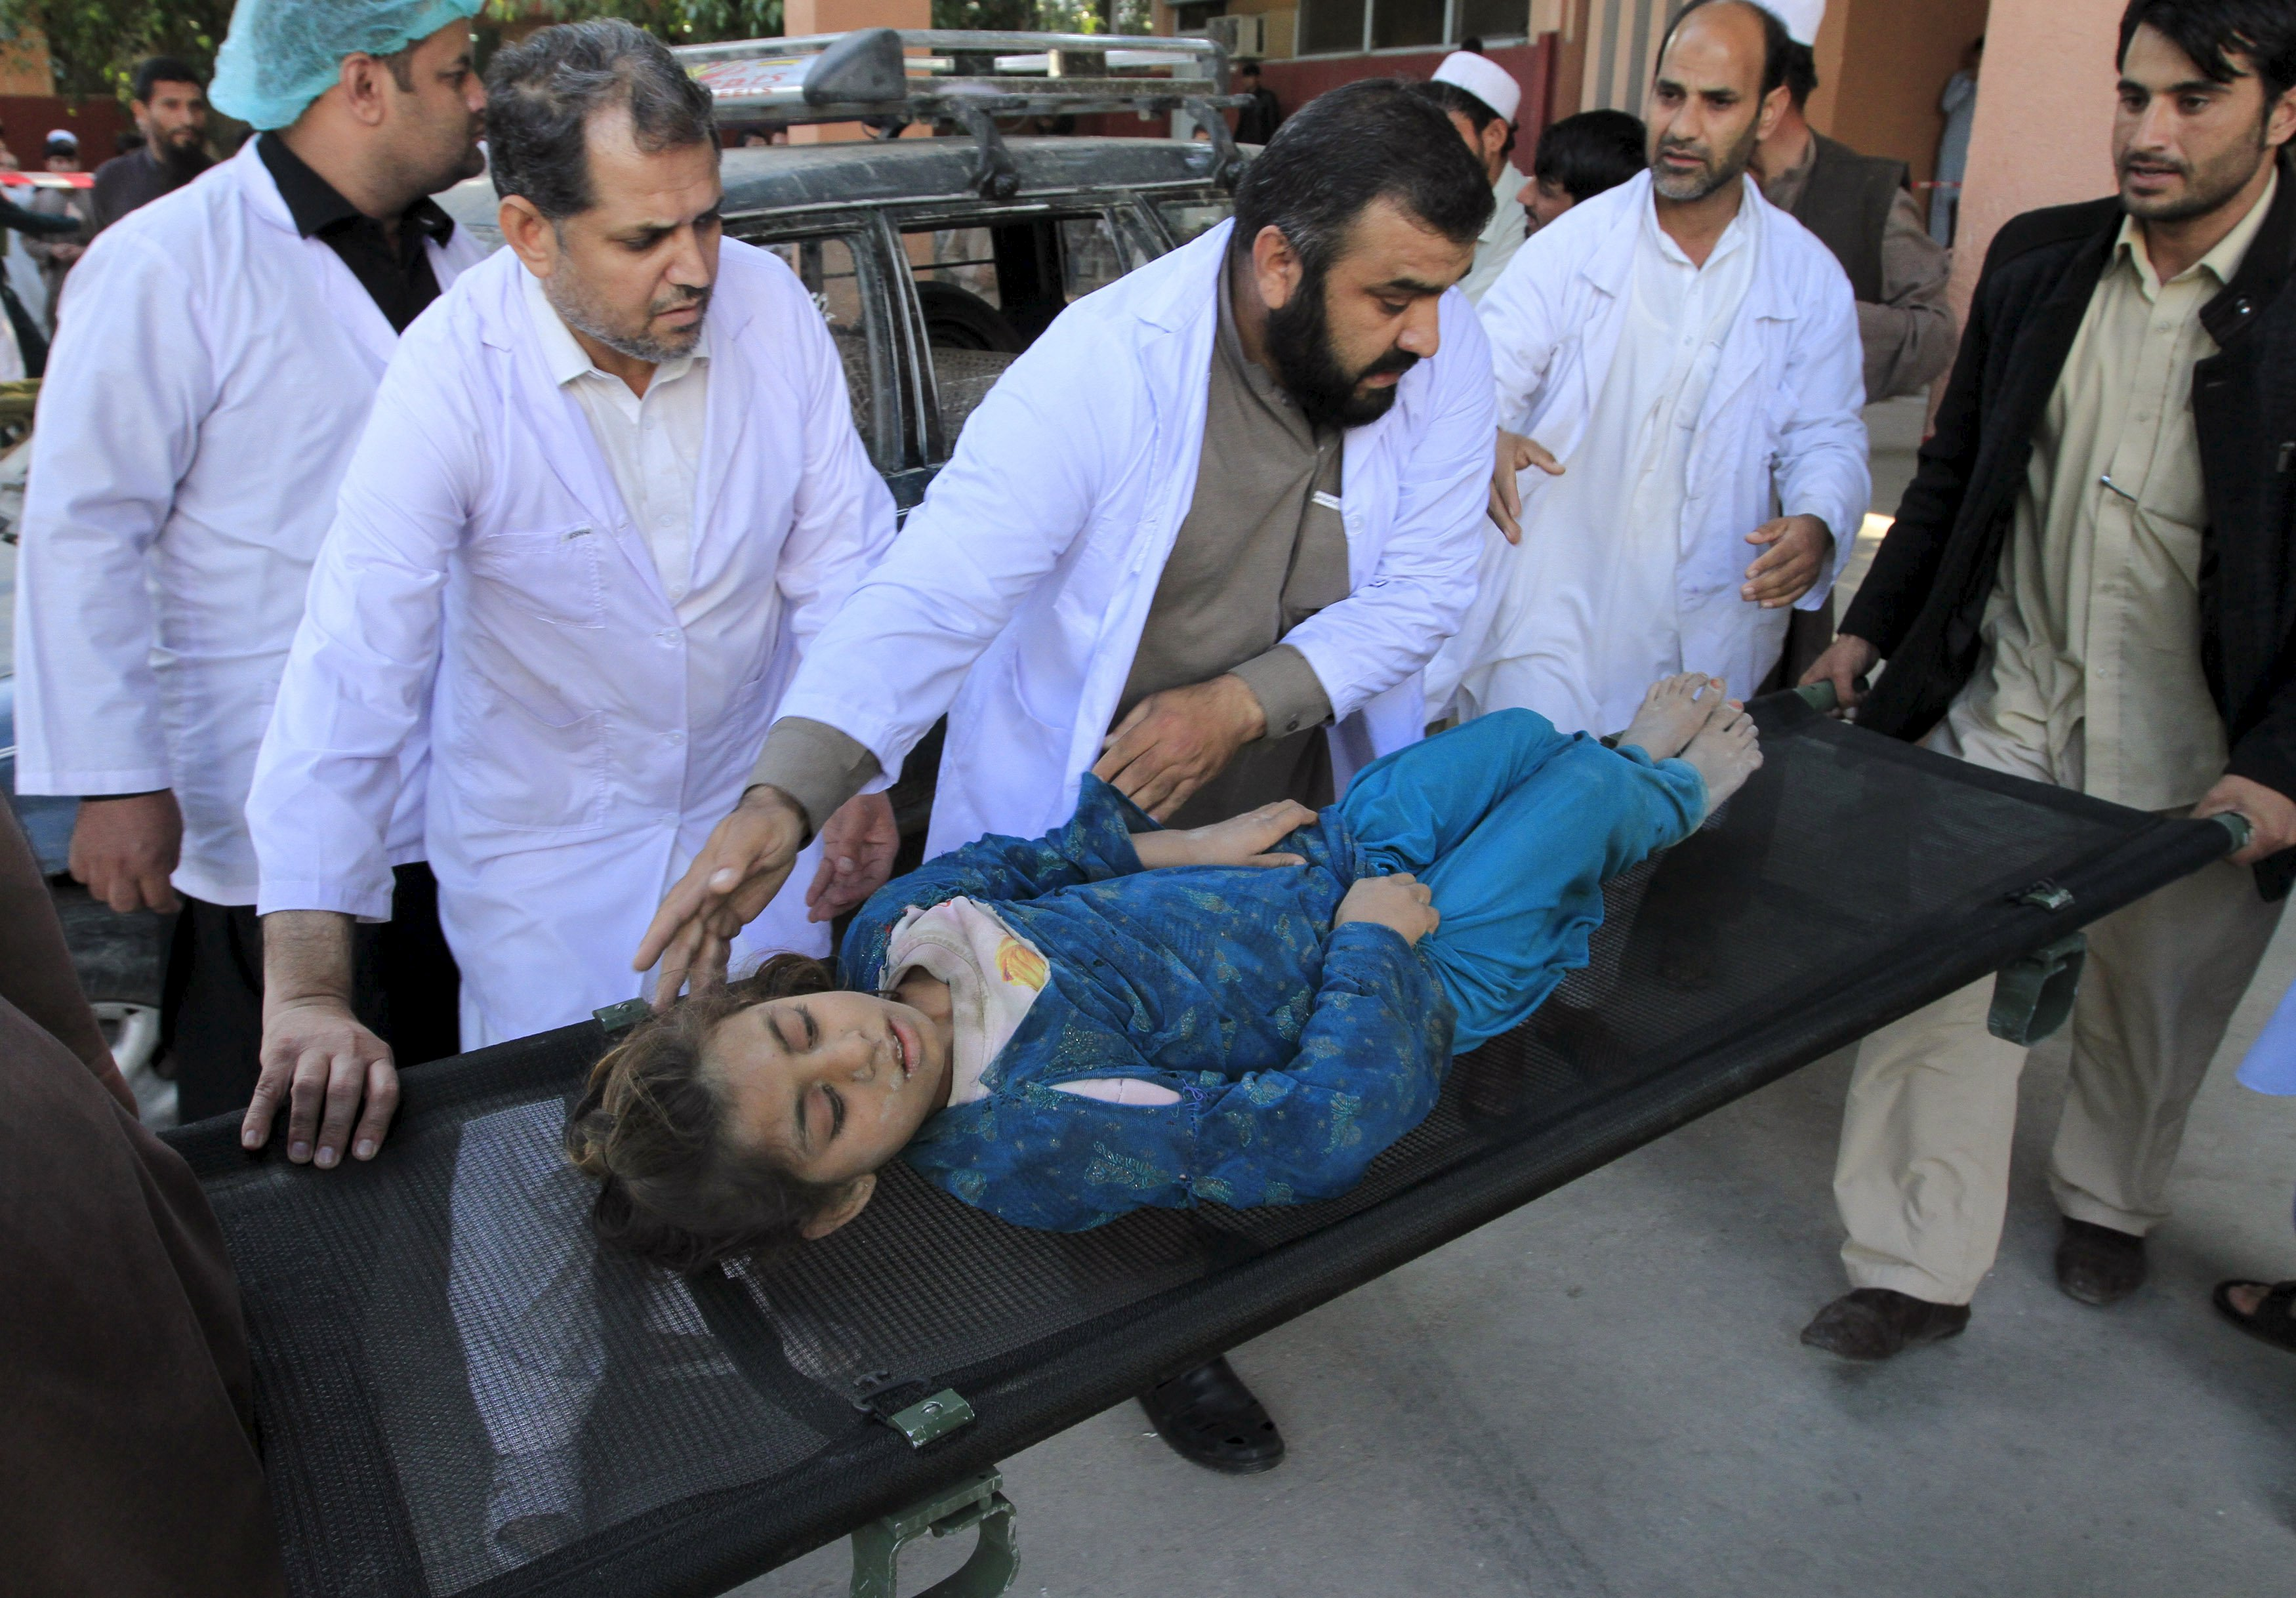 Rescue workers move a girl, who was injured after an earthquake, at a hospital in Jalalabad, Afghanistan, October 26, 2015. Photo: Reuters